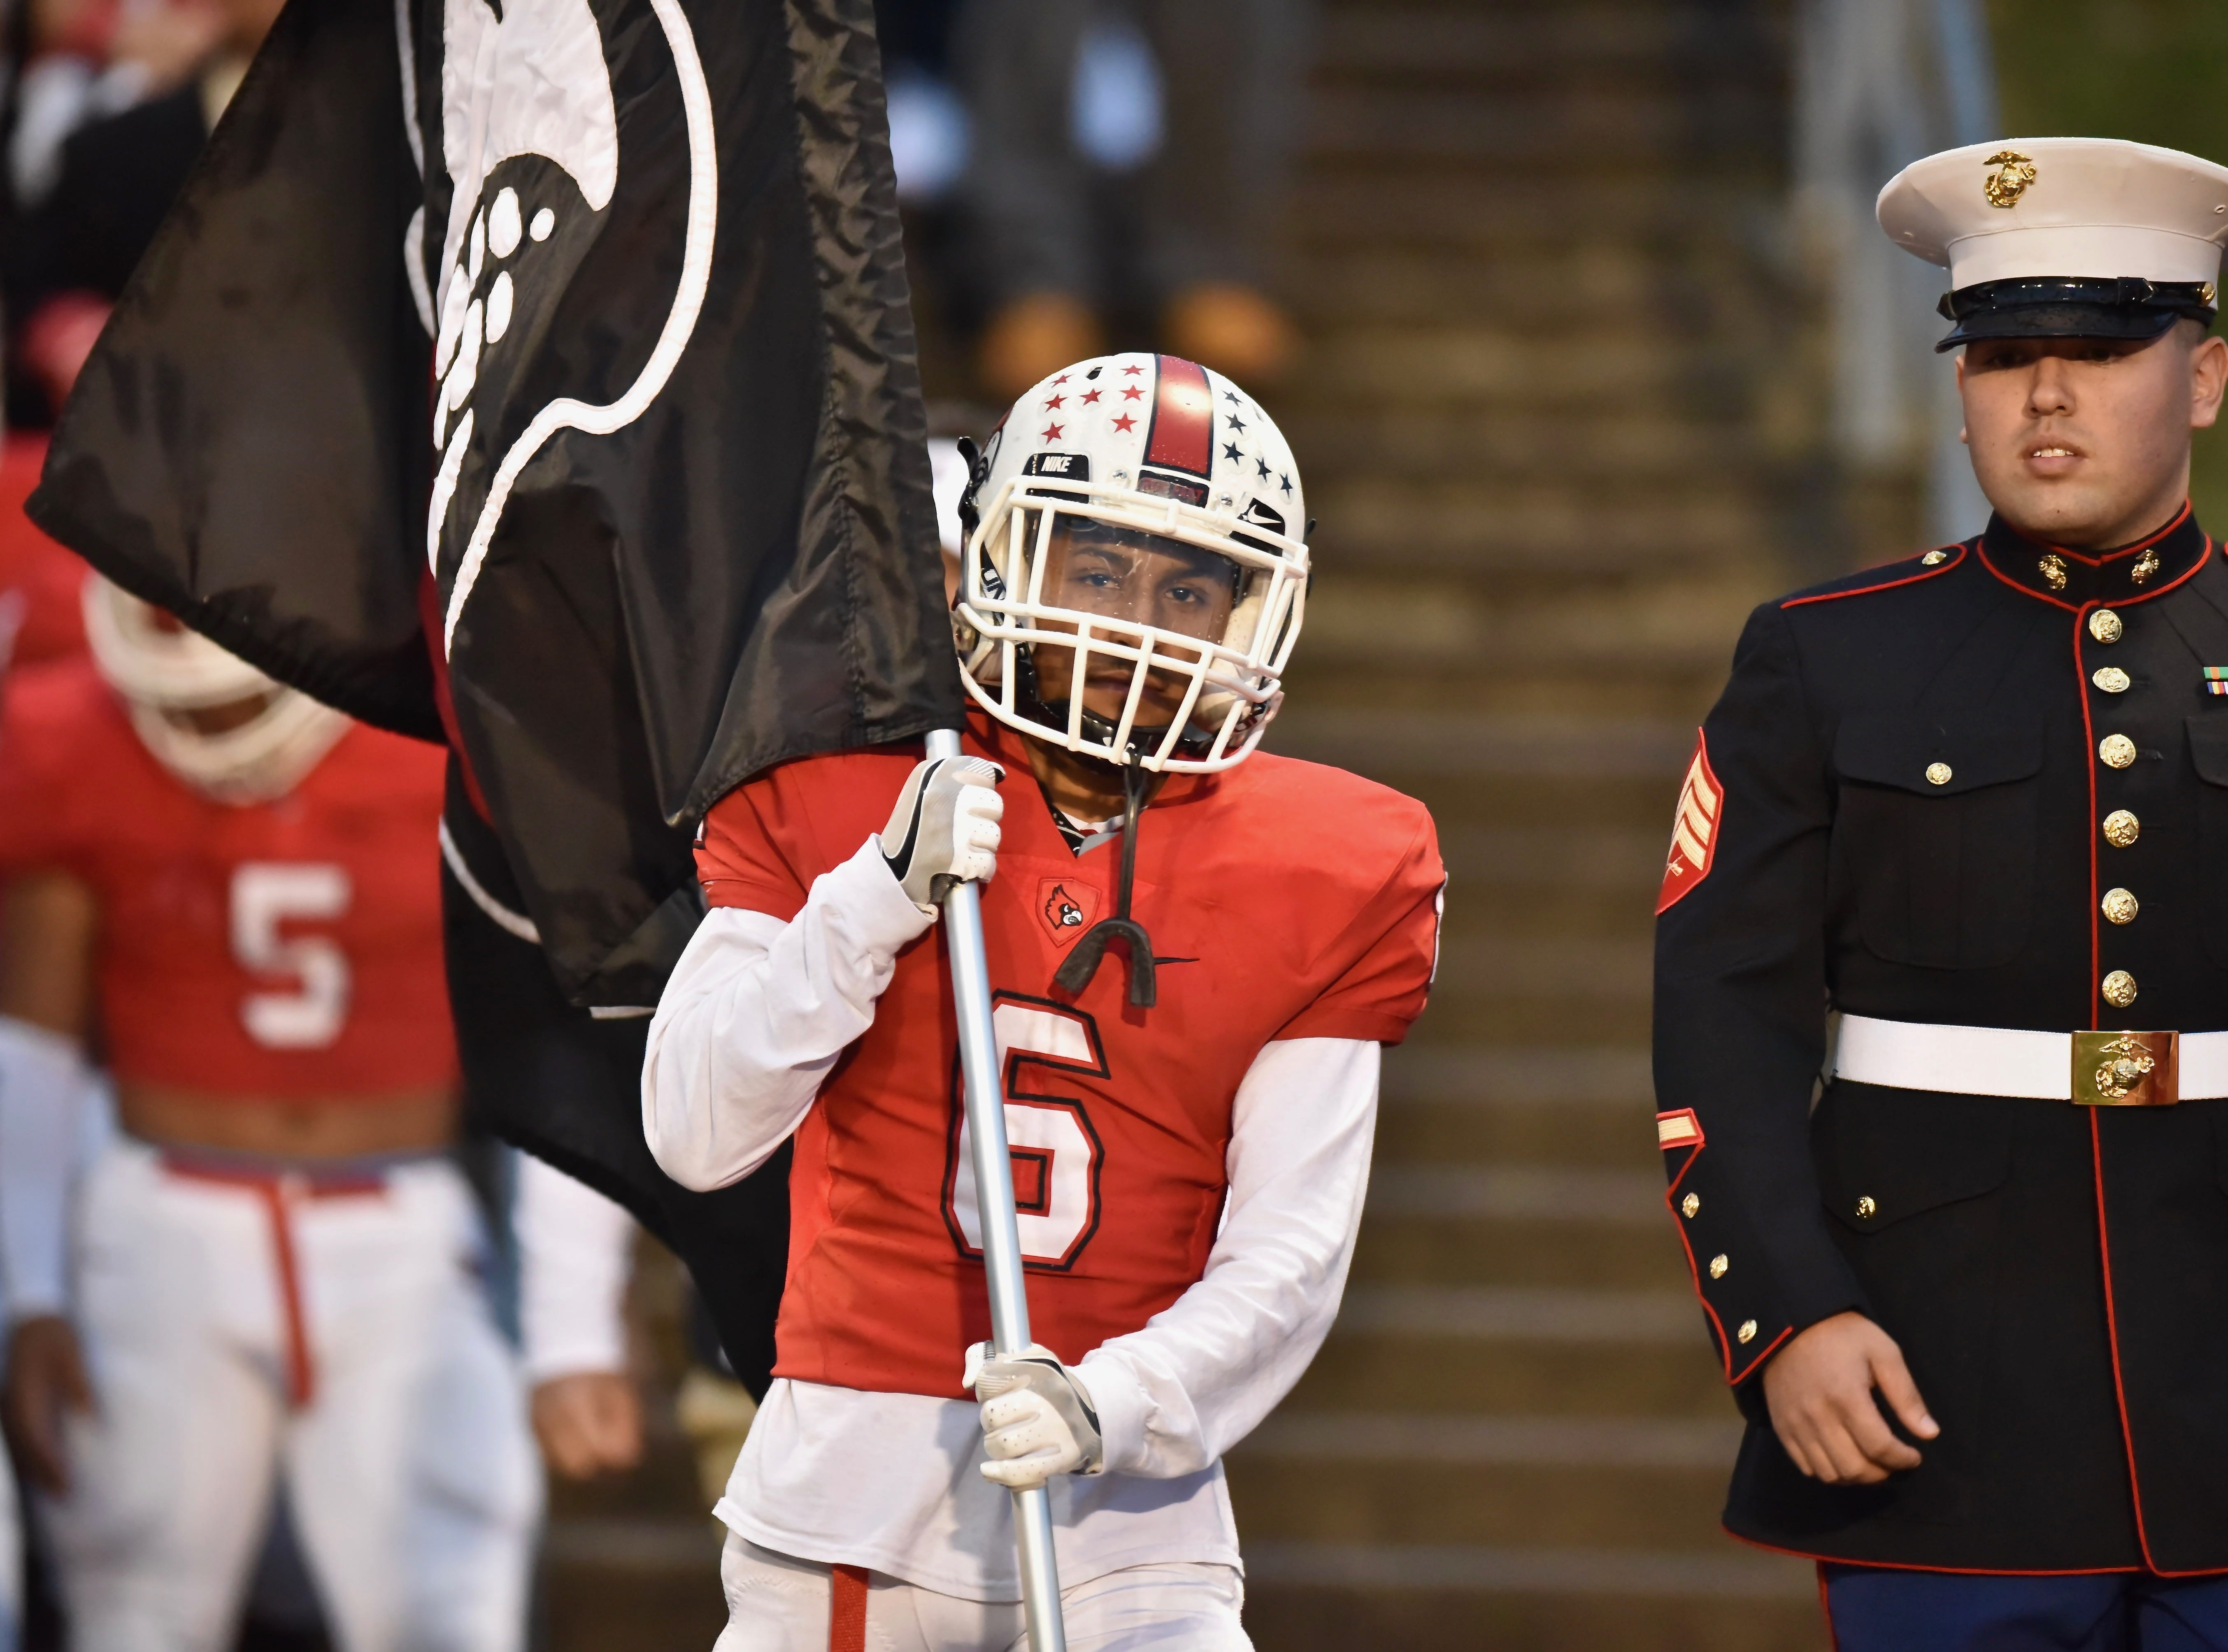 Colerain's Hector Lopez leads the Cardinals onto the field Friday, Oct. 19, 2018 at Colerain High School